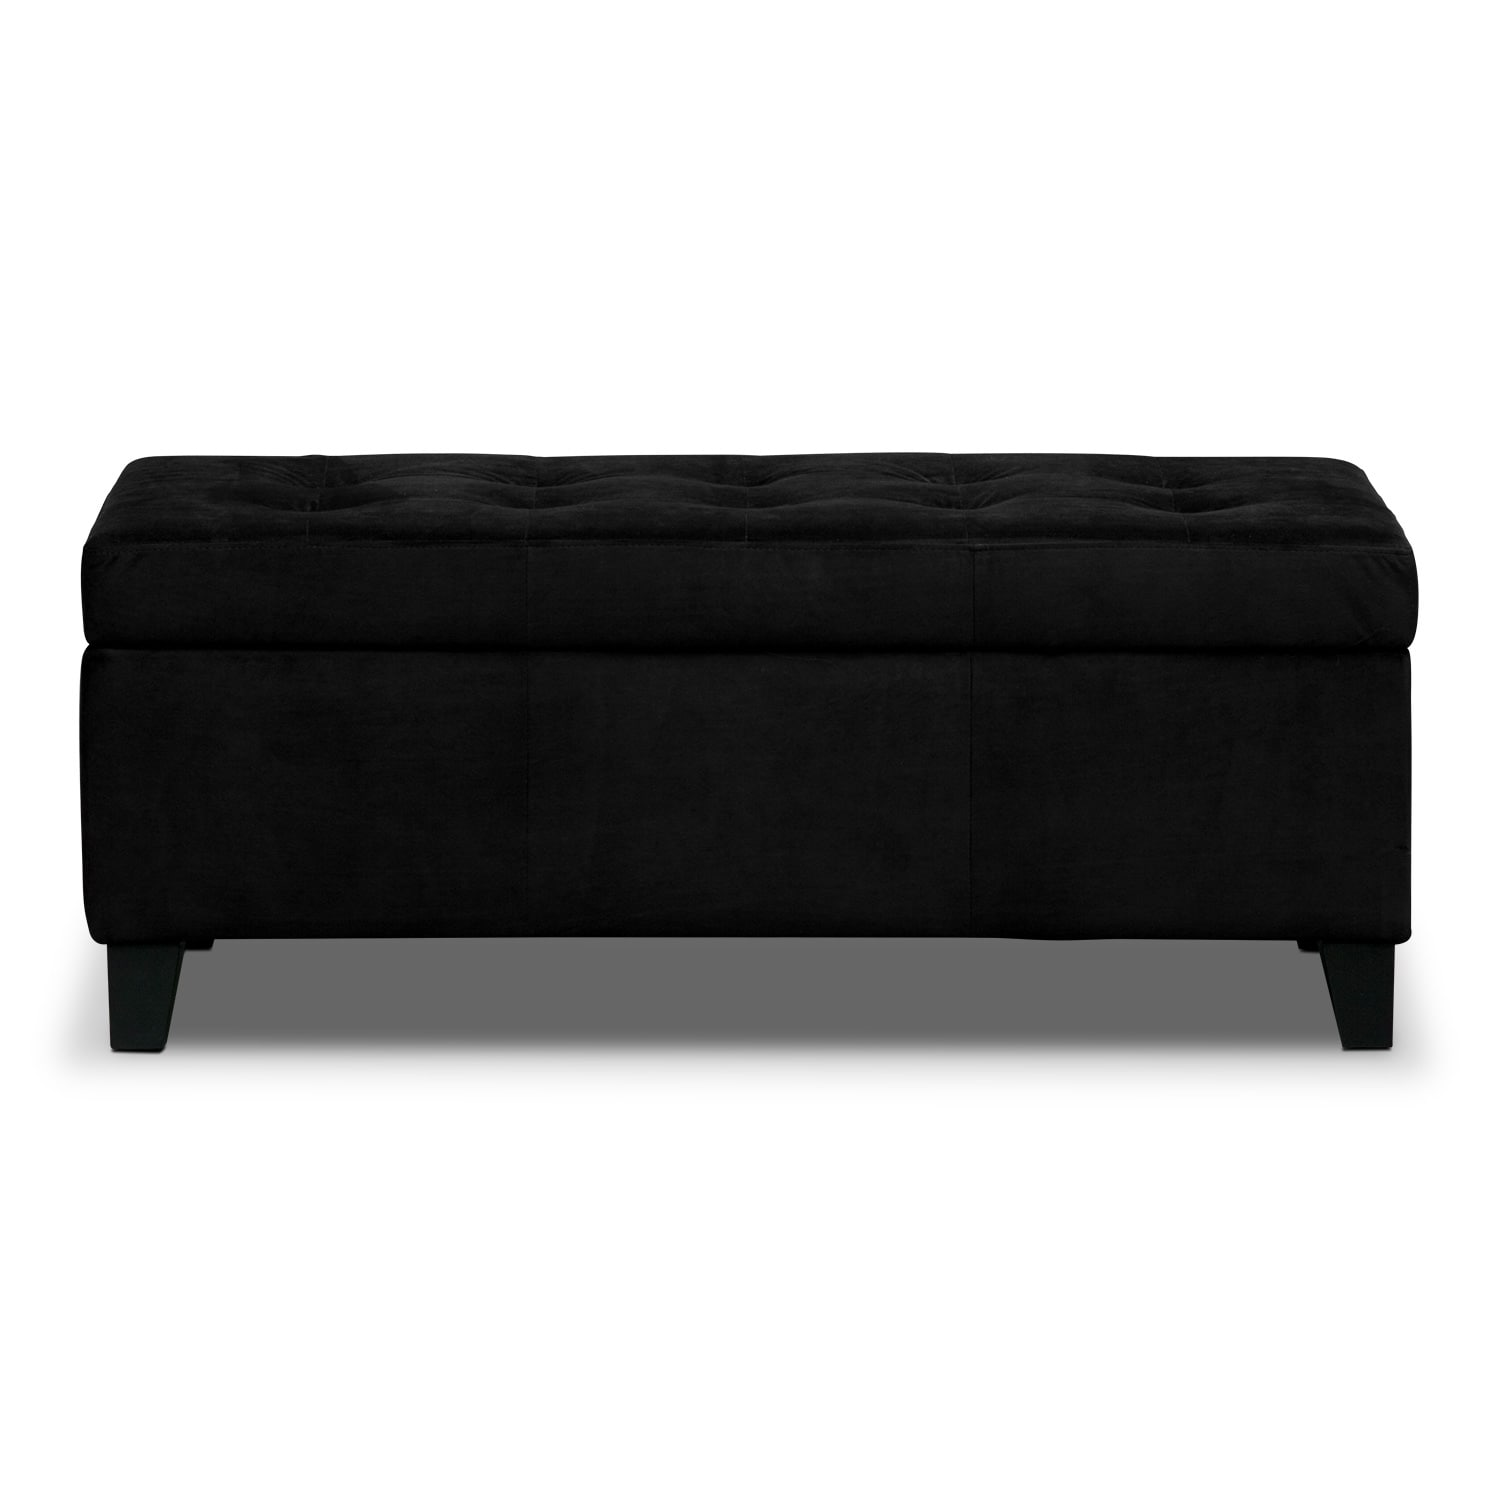 Valerie storage bench black american signature furniture Storage benches